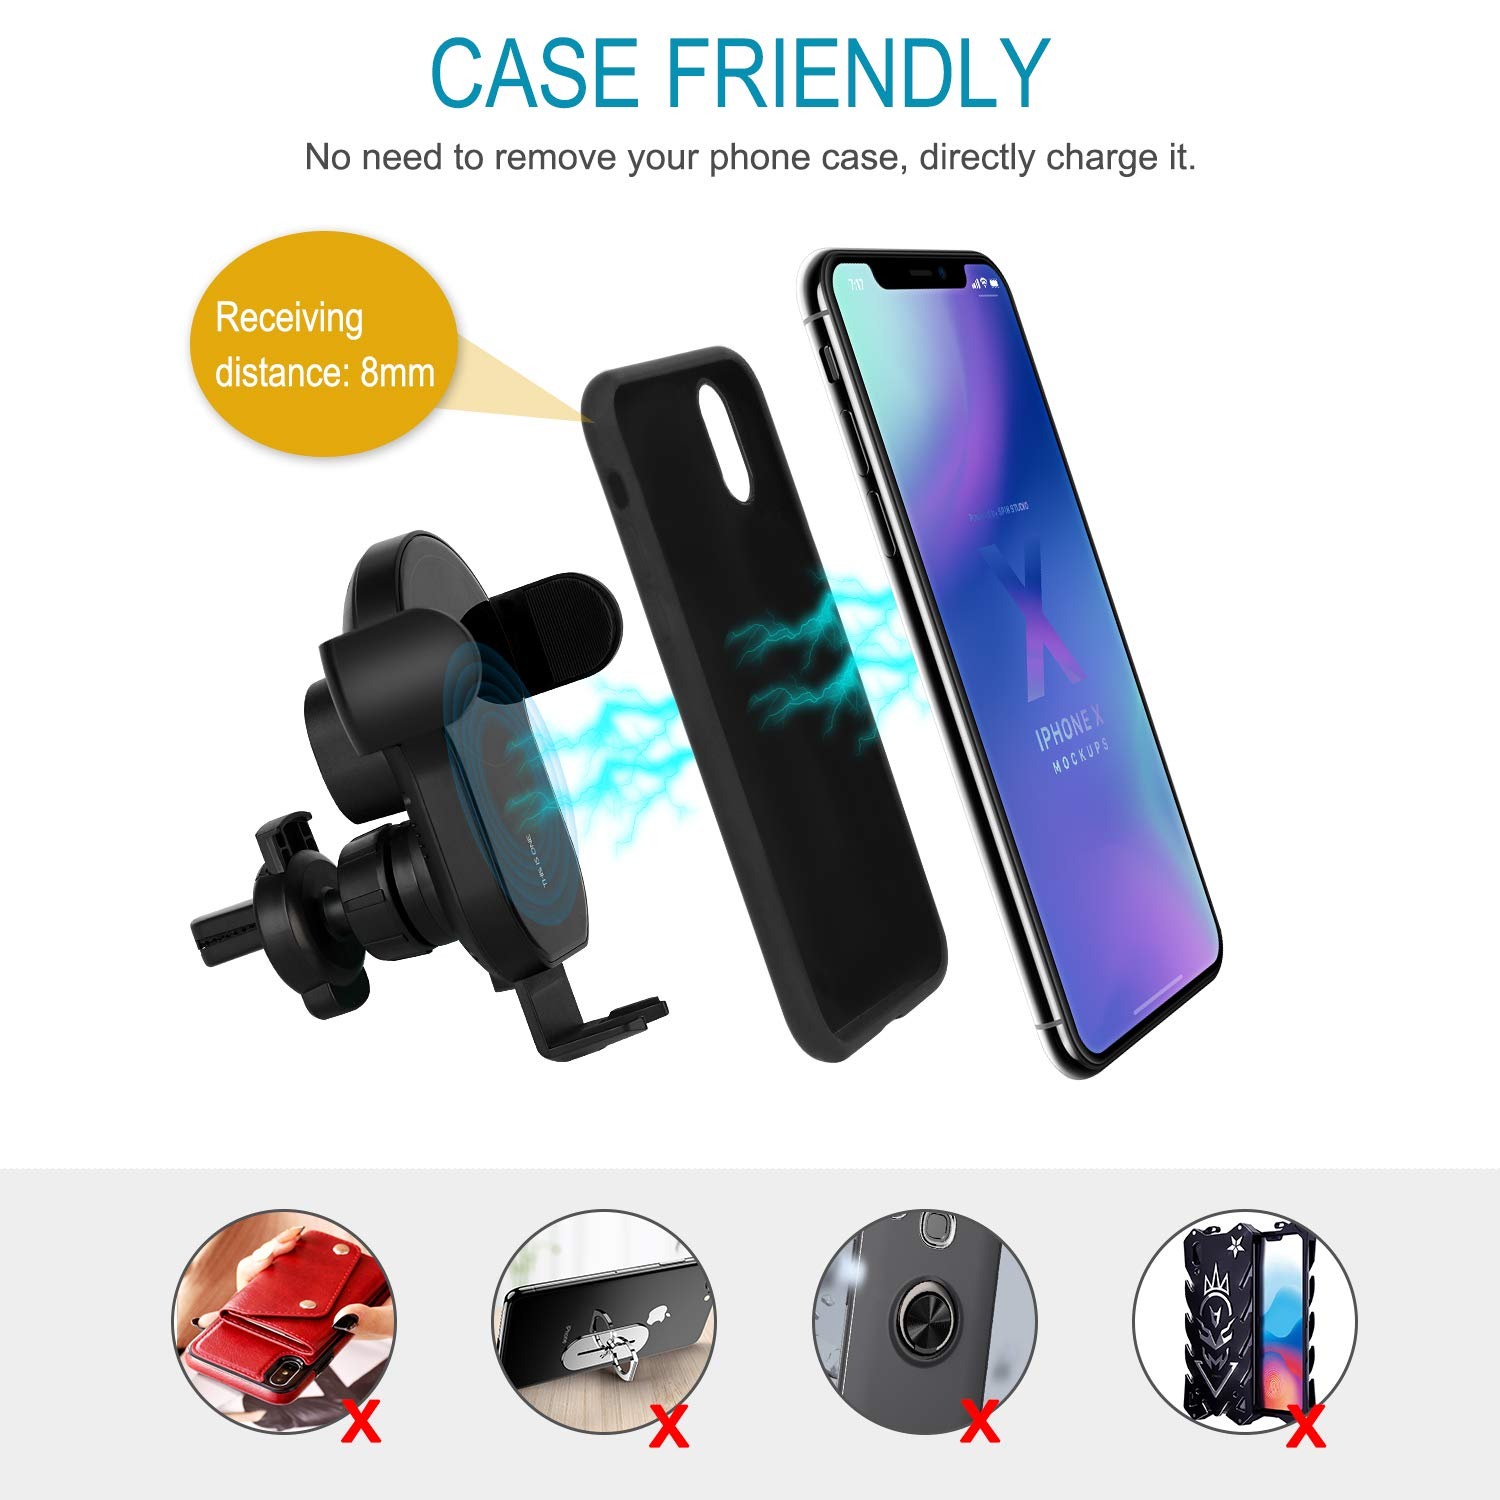 Auto Clamping Wireless Car Charger Air Vent Dashboard Car Phone Charger Holder for iPhone 11//11 Pro//11 Pro Max//Xs MAX//XS//XR//X//8//8 Plus,Samsung LOJIA 15W Fast QI Wireless Car Charger Mount